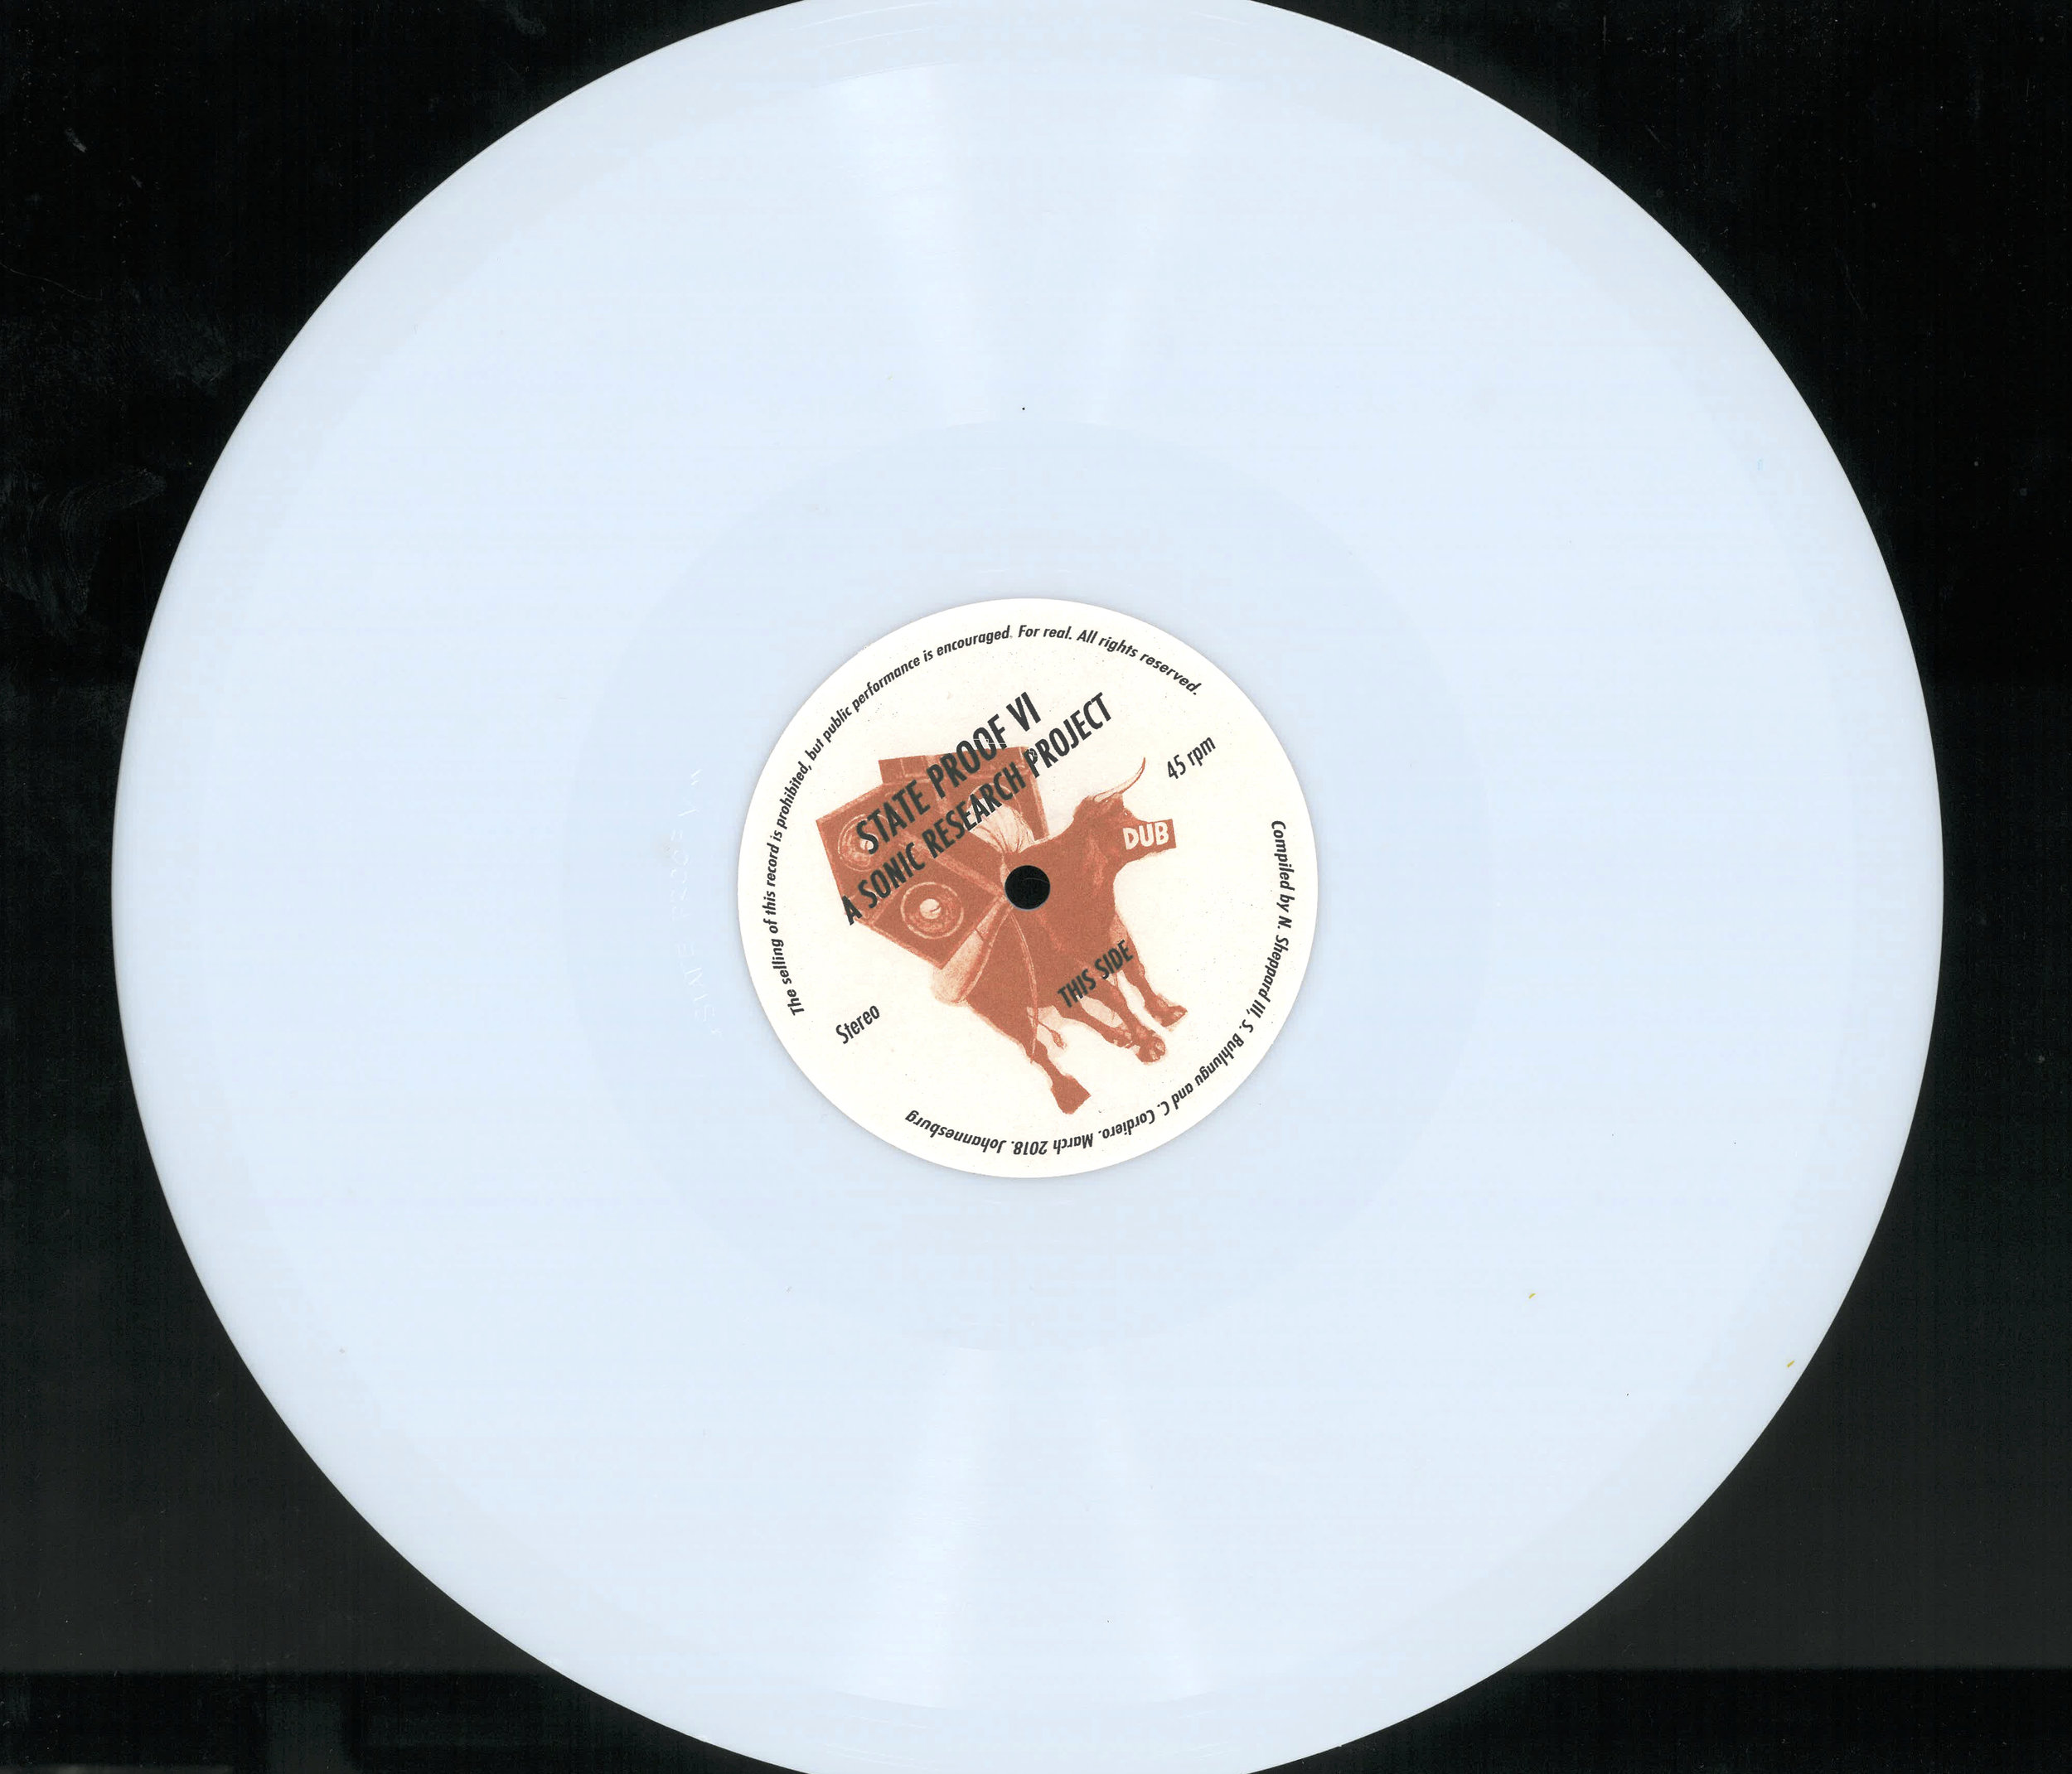 STATE PROOF Dub Cow Side A Vinyl.jpg